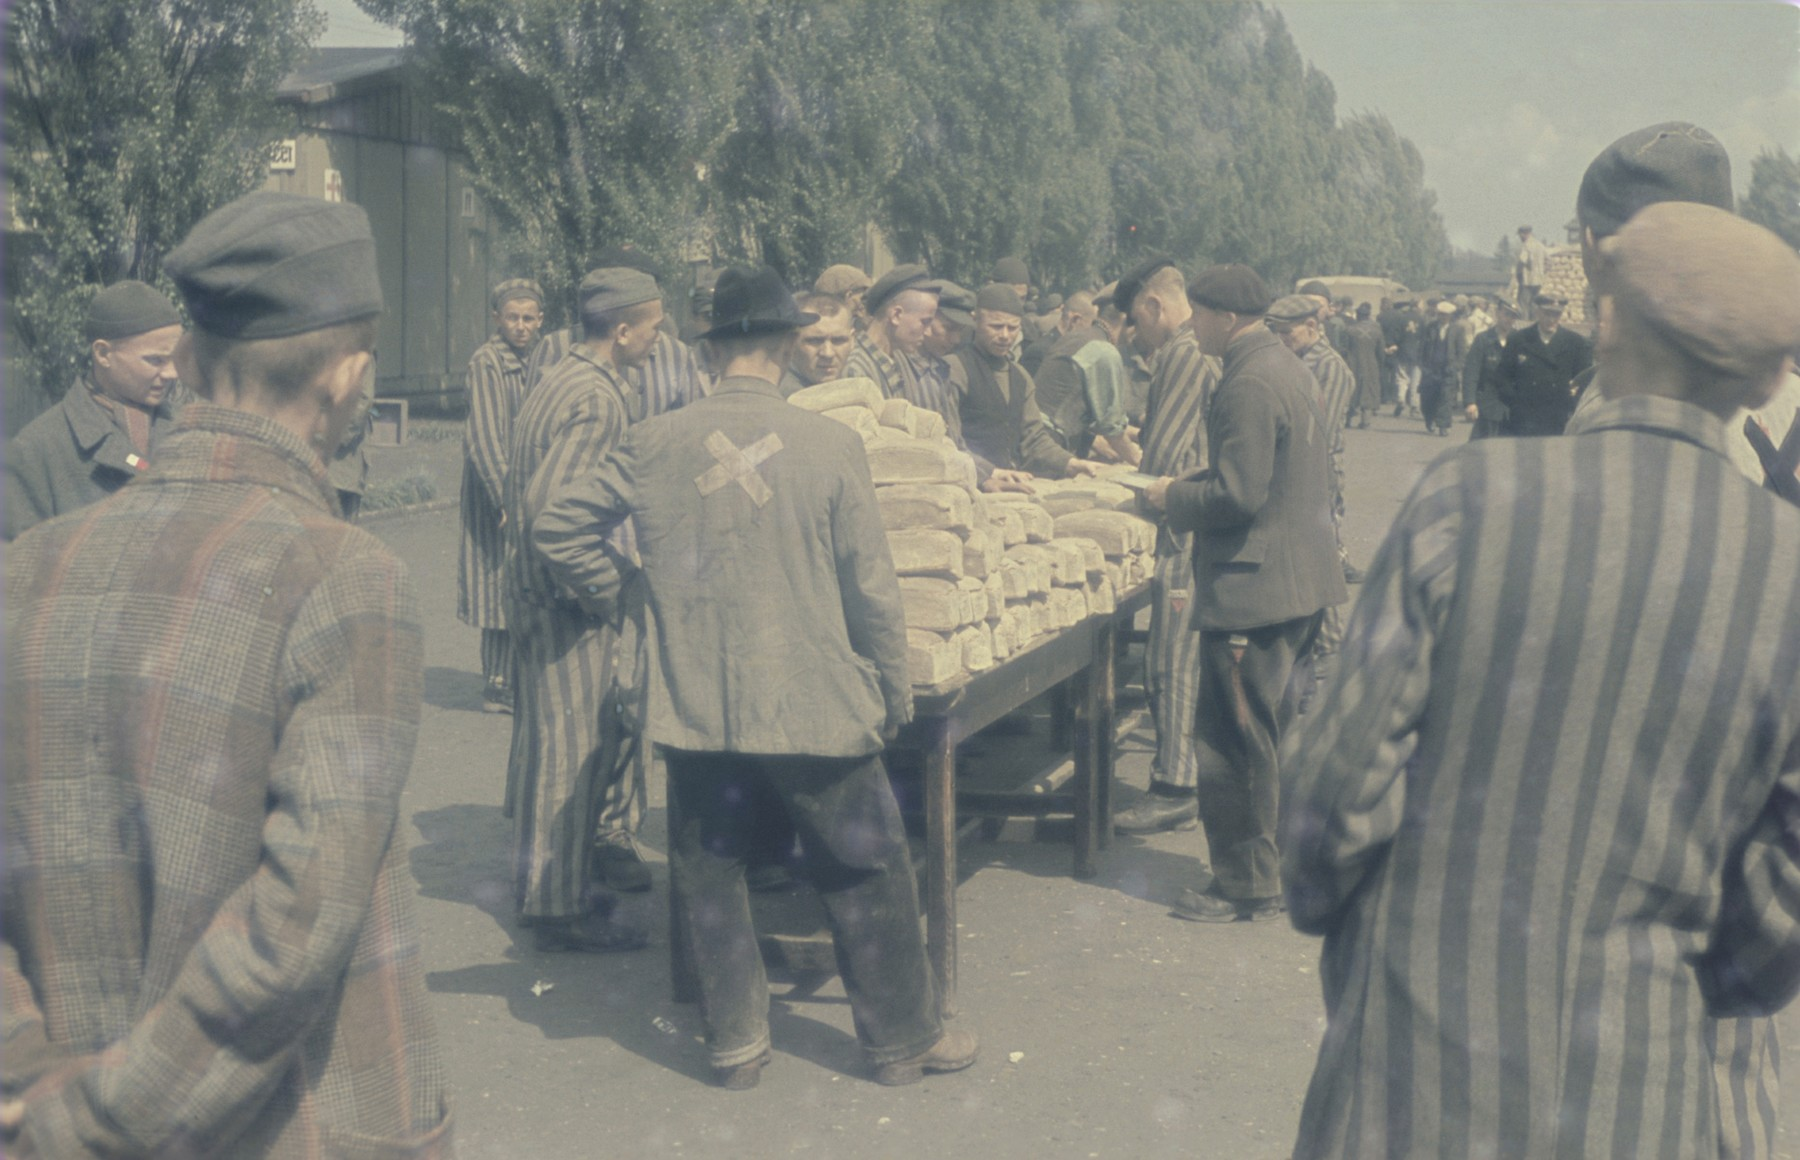 Loaves of bread are distributed to survivors in the newly liberated Dachau concentration camp.